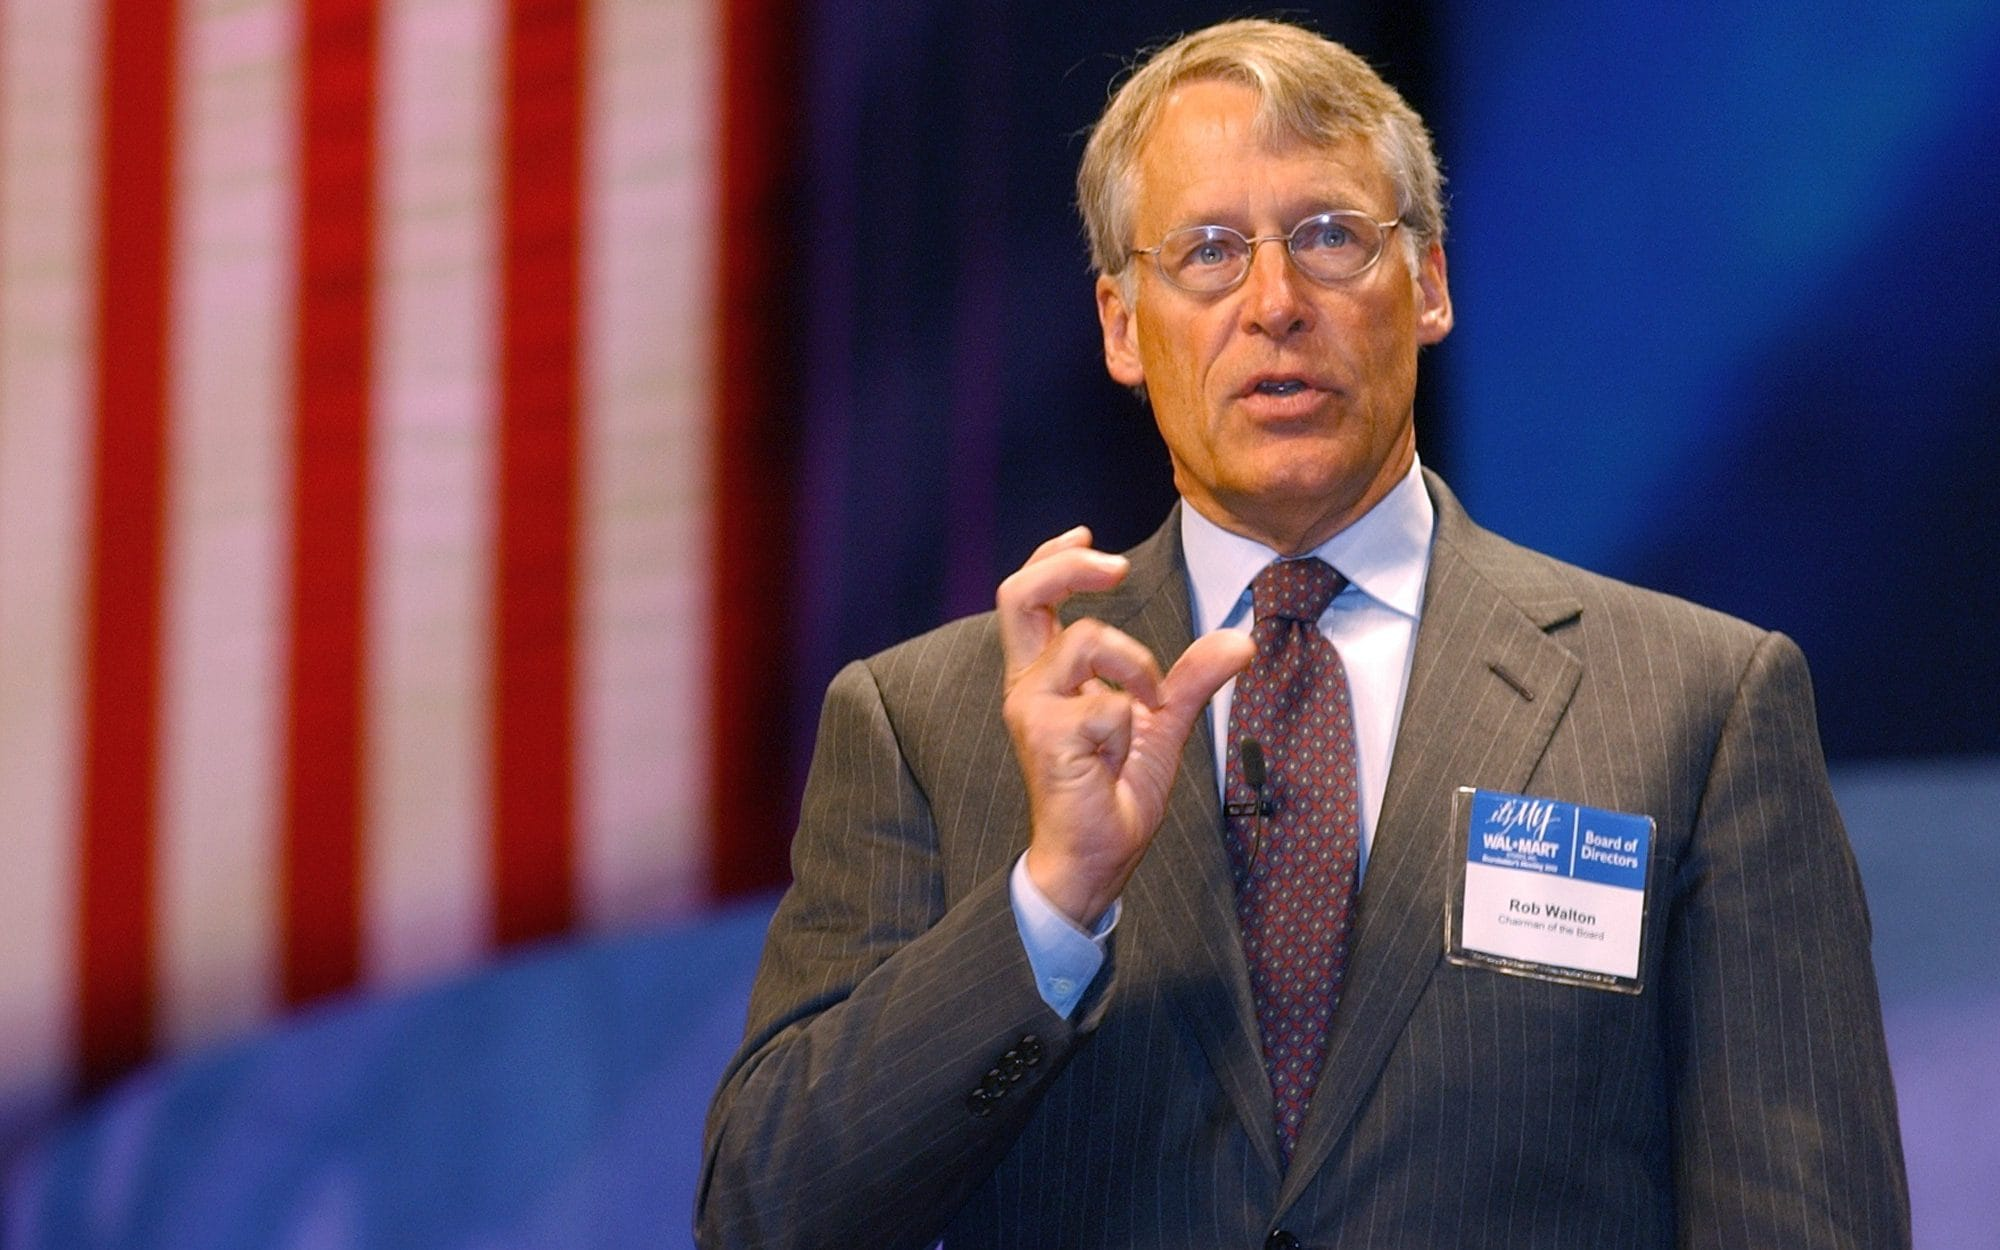 S. ROBSON WALTON Richest People In The World